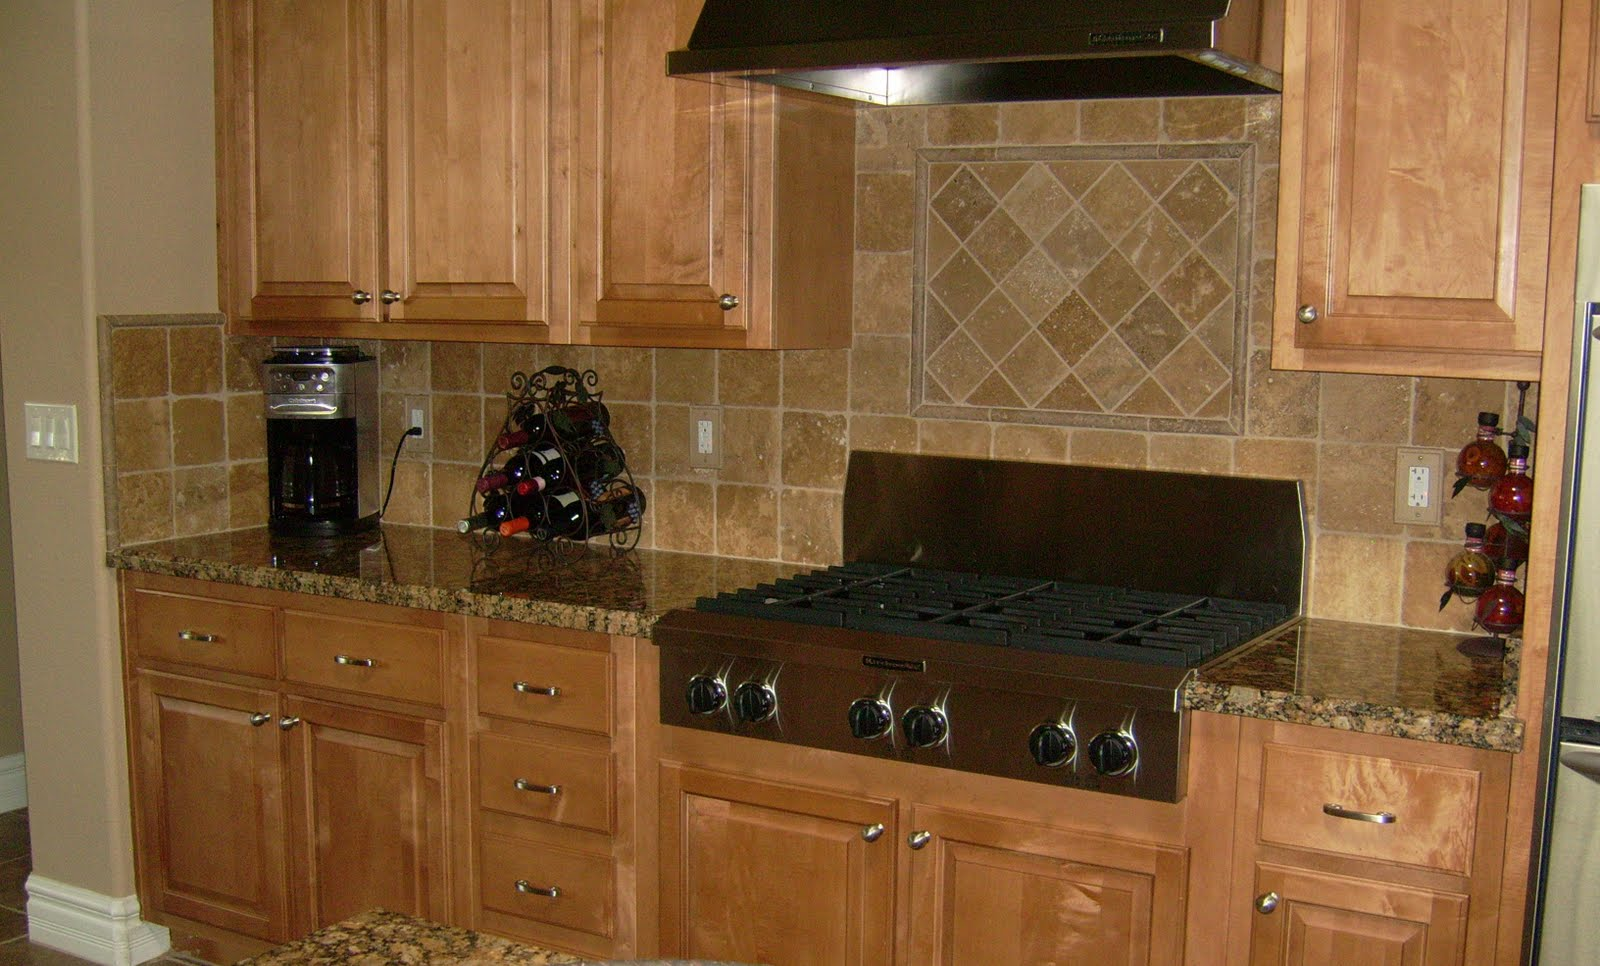 Pictures kitchen backsplash ideas Backsplash wall tile